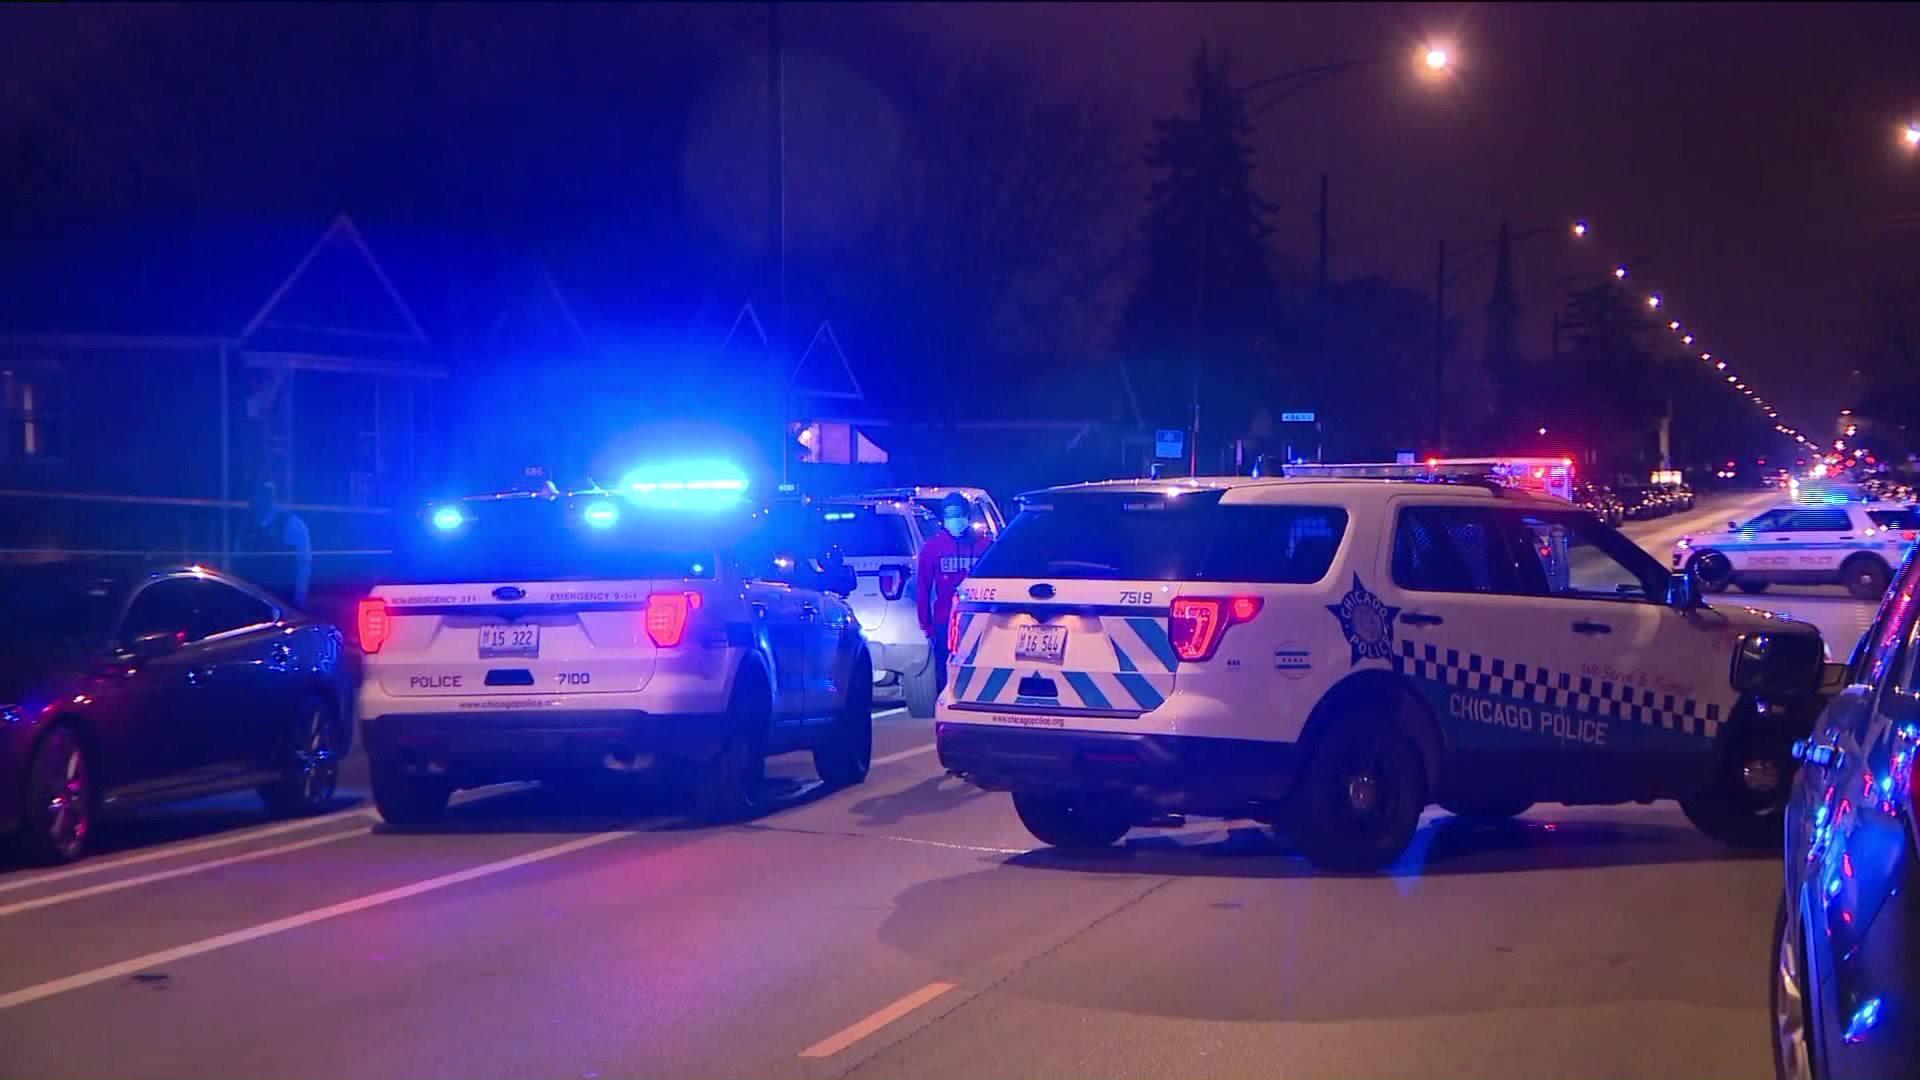 Man Killed 5 Year Old Among 3 Others Injured In Gresham Shooting